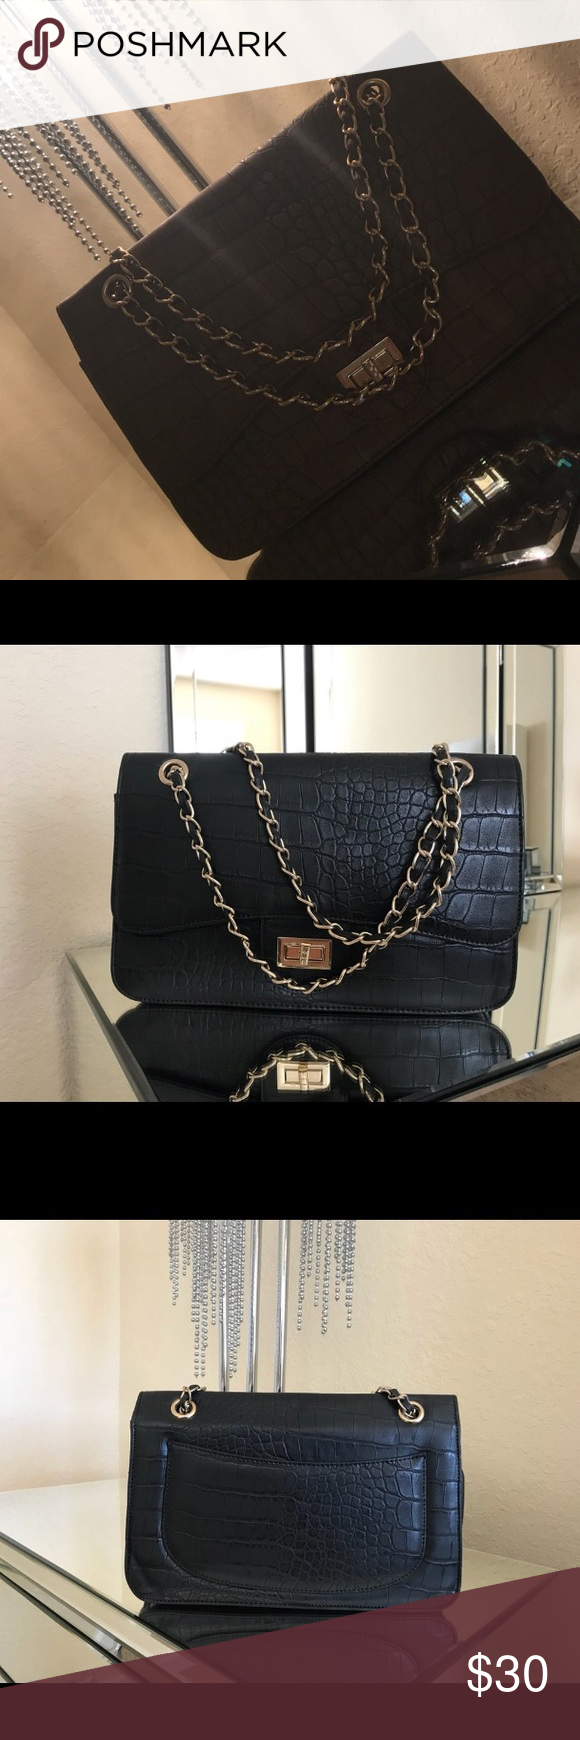 Brand New Omar Sharif Paris Purse Handbag Gorgeous Dress It Up For A Night Out Is Down With Jeans And Nice Top